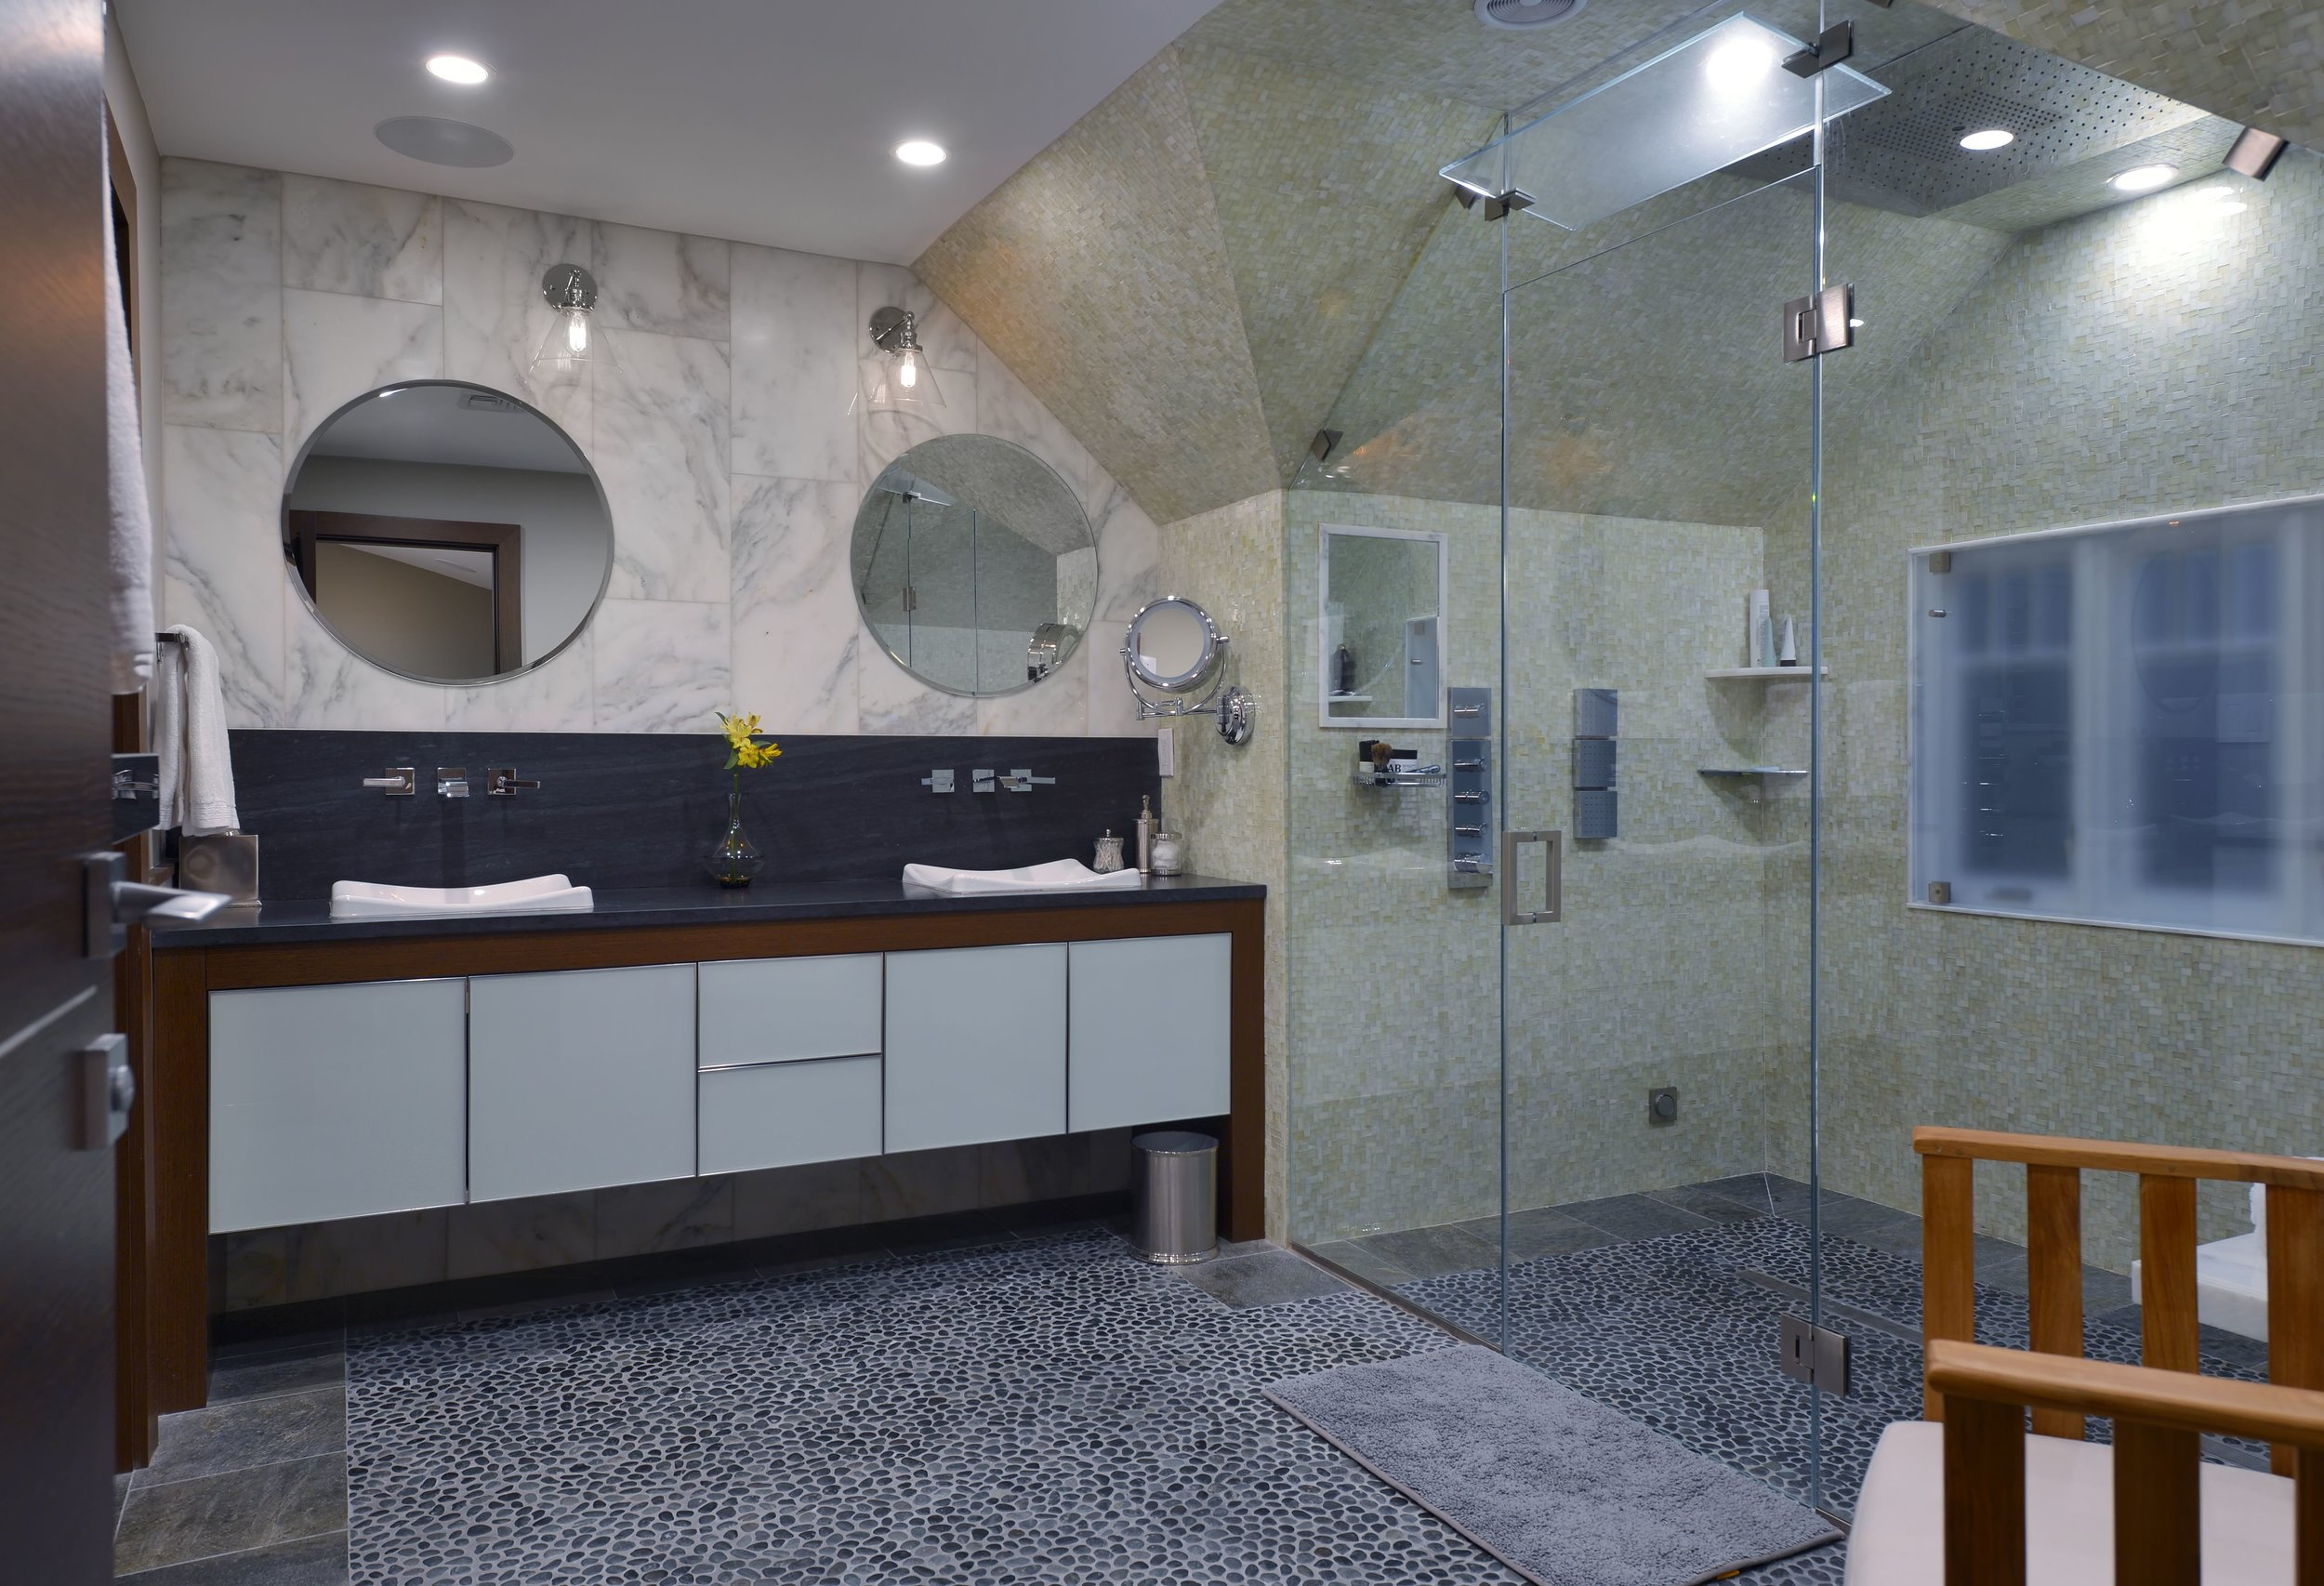 Large bathroom with double sinks and double circular mirrors hanging above